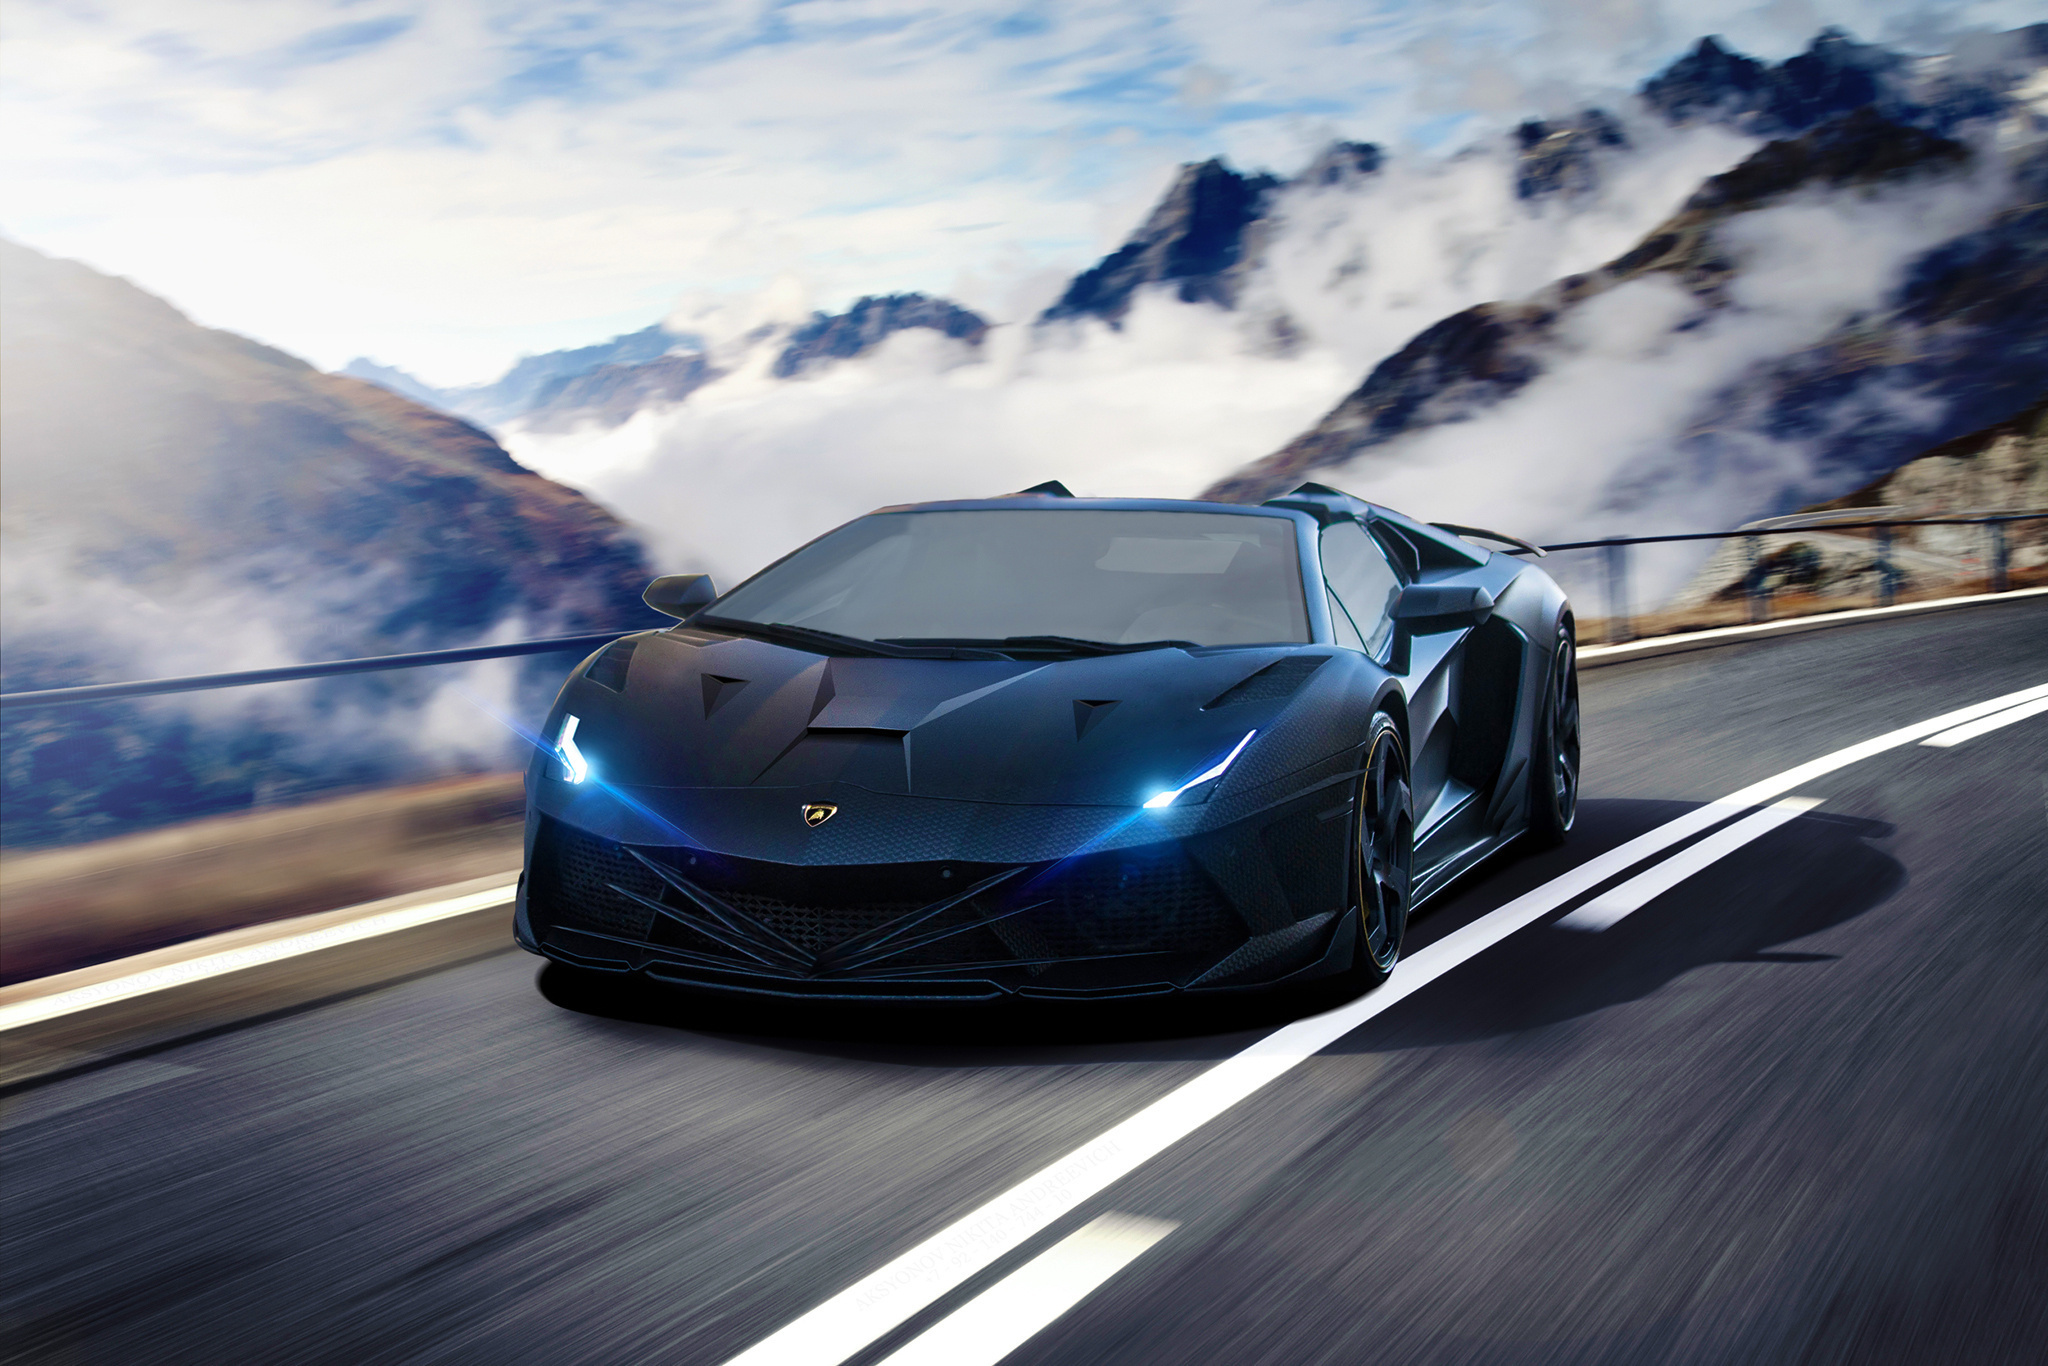 TunedCars is the site for great high quality wallpapers and great tuning and super cars news